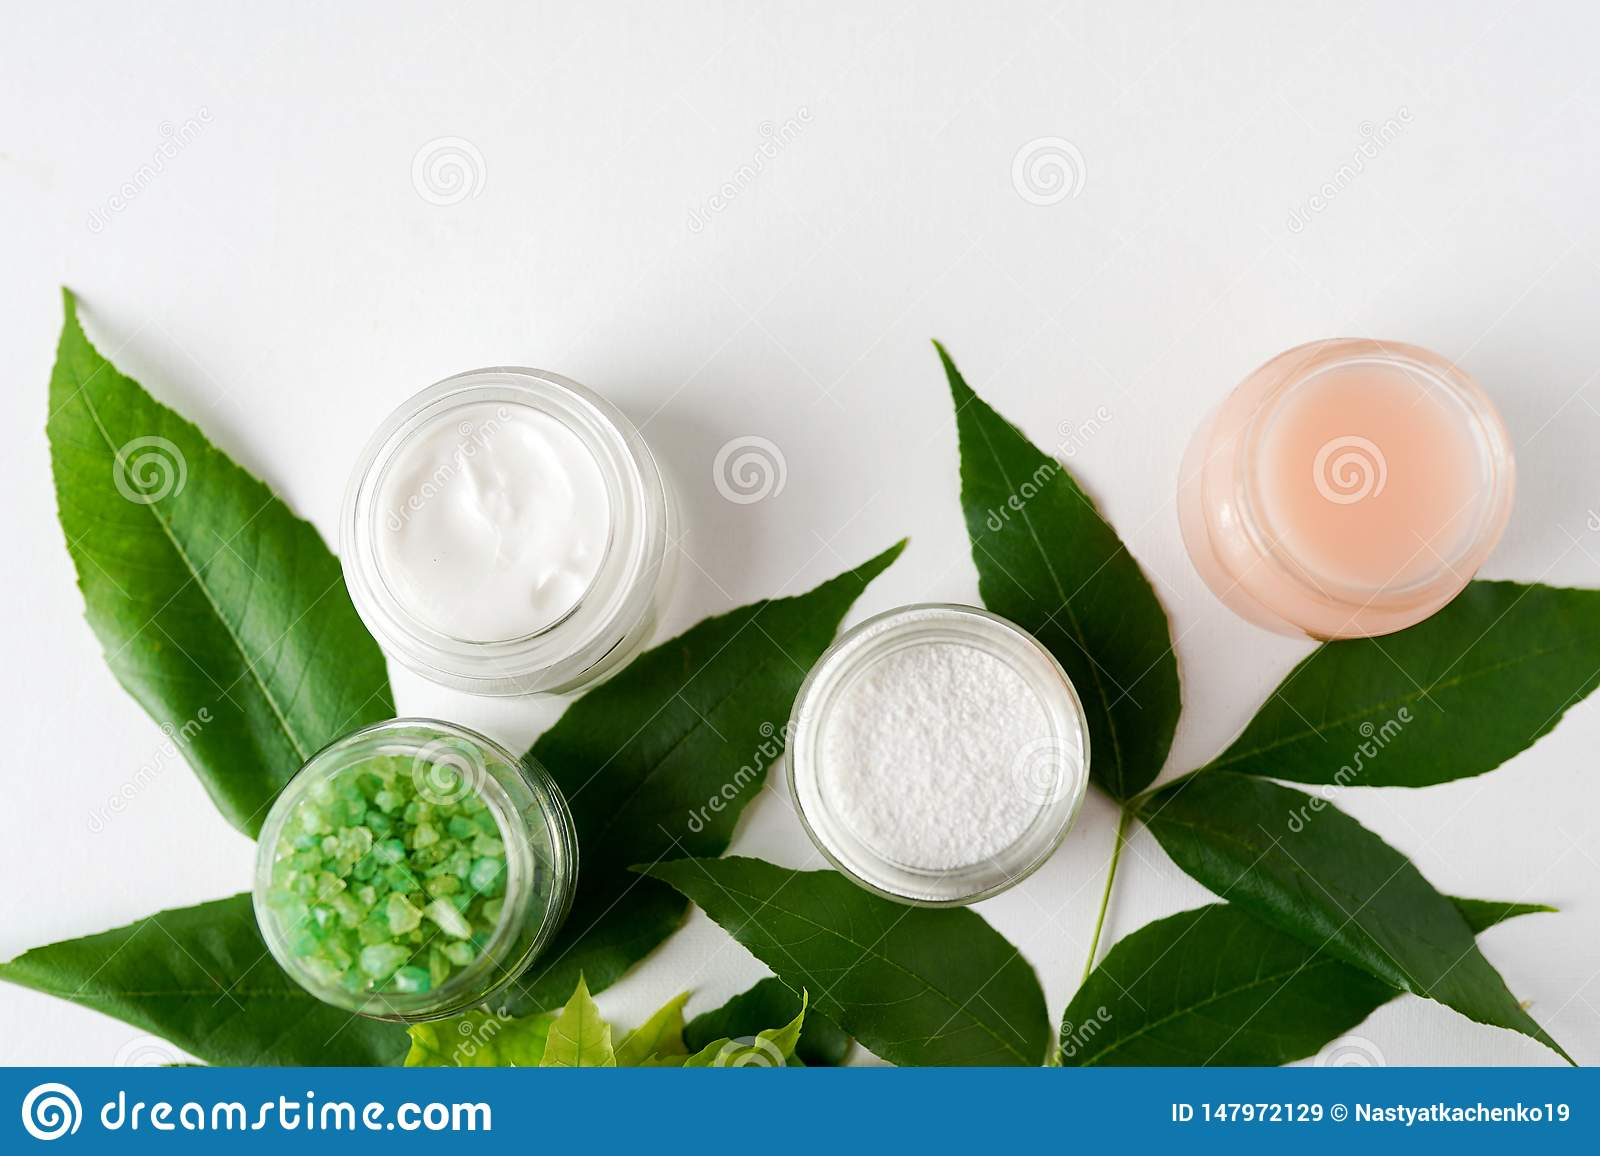 Spa treatment concept, flat lay natural cosmetic products mask, gel, salt view from above, space for a text . white background